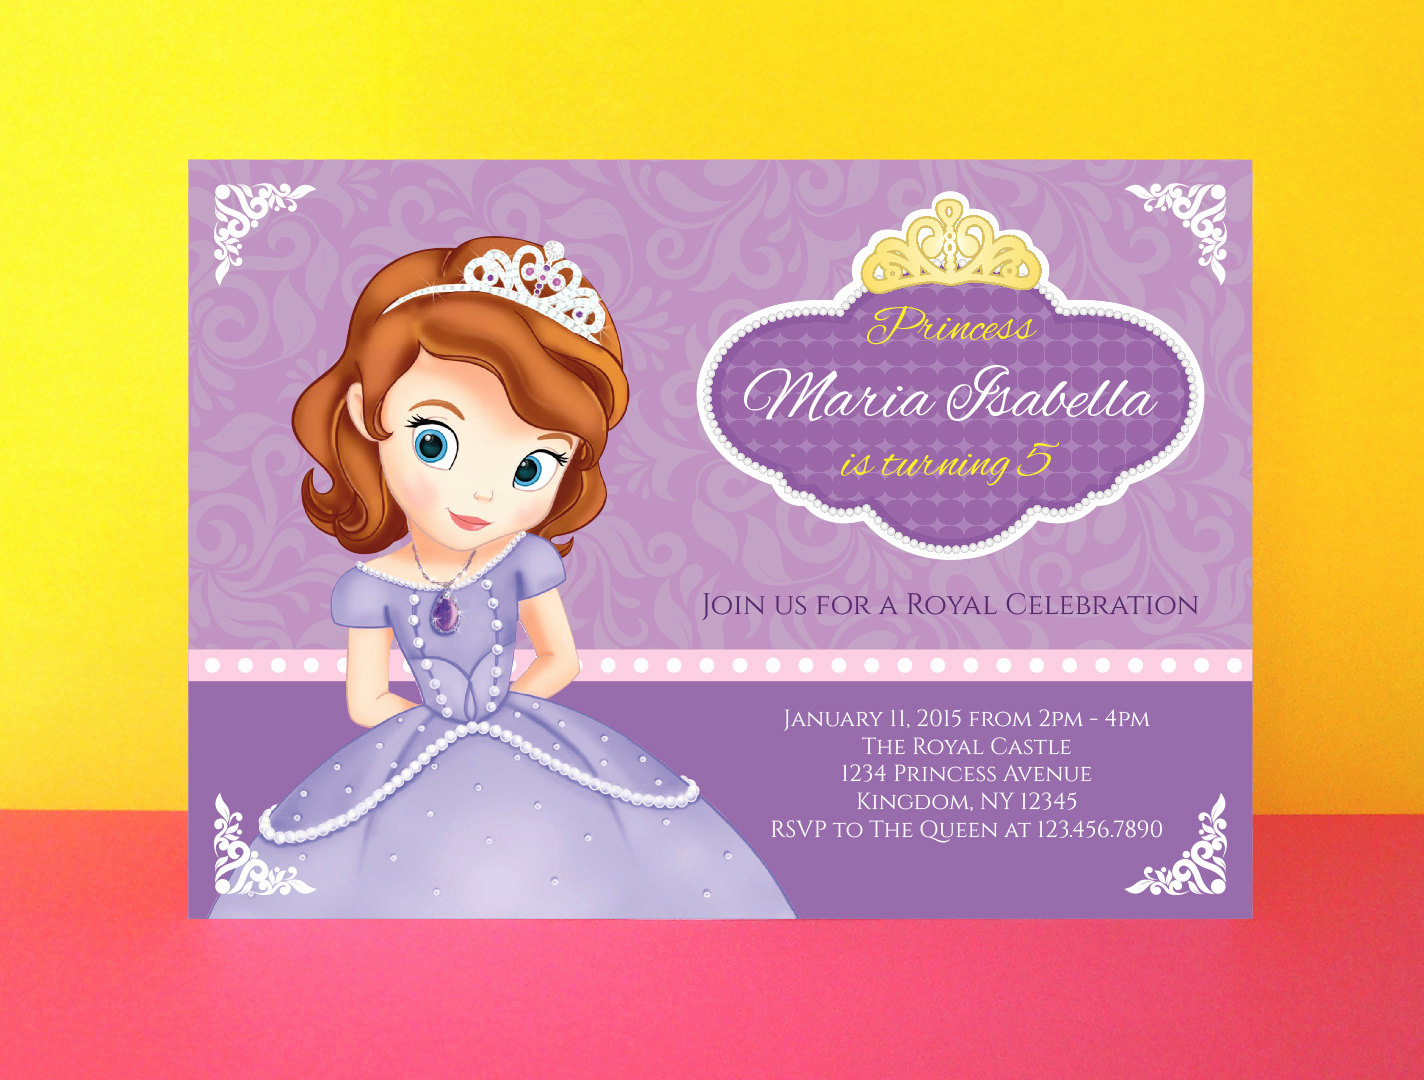 Sofia the First Invitation Fresh Princess sofia Invitation sofia the First by Paperpartydesign